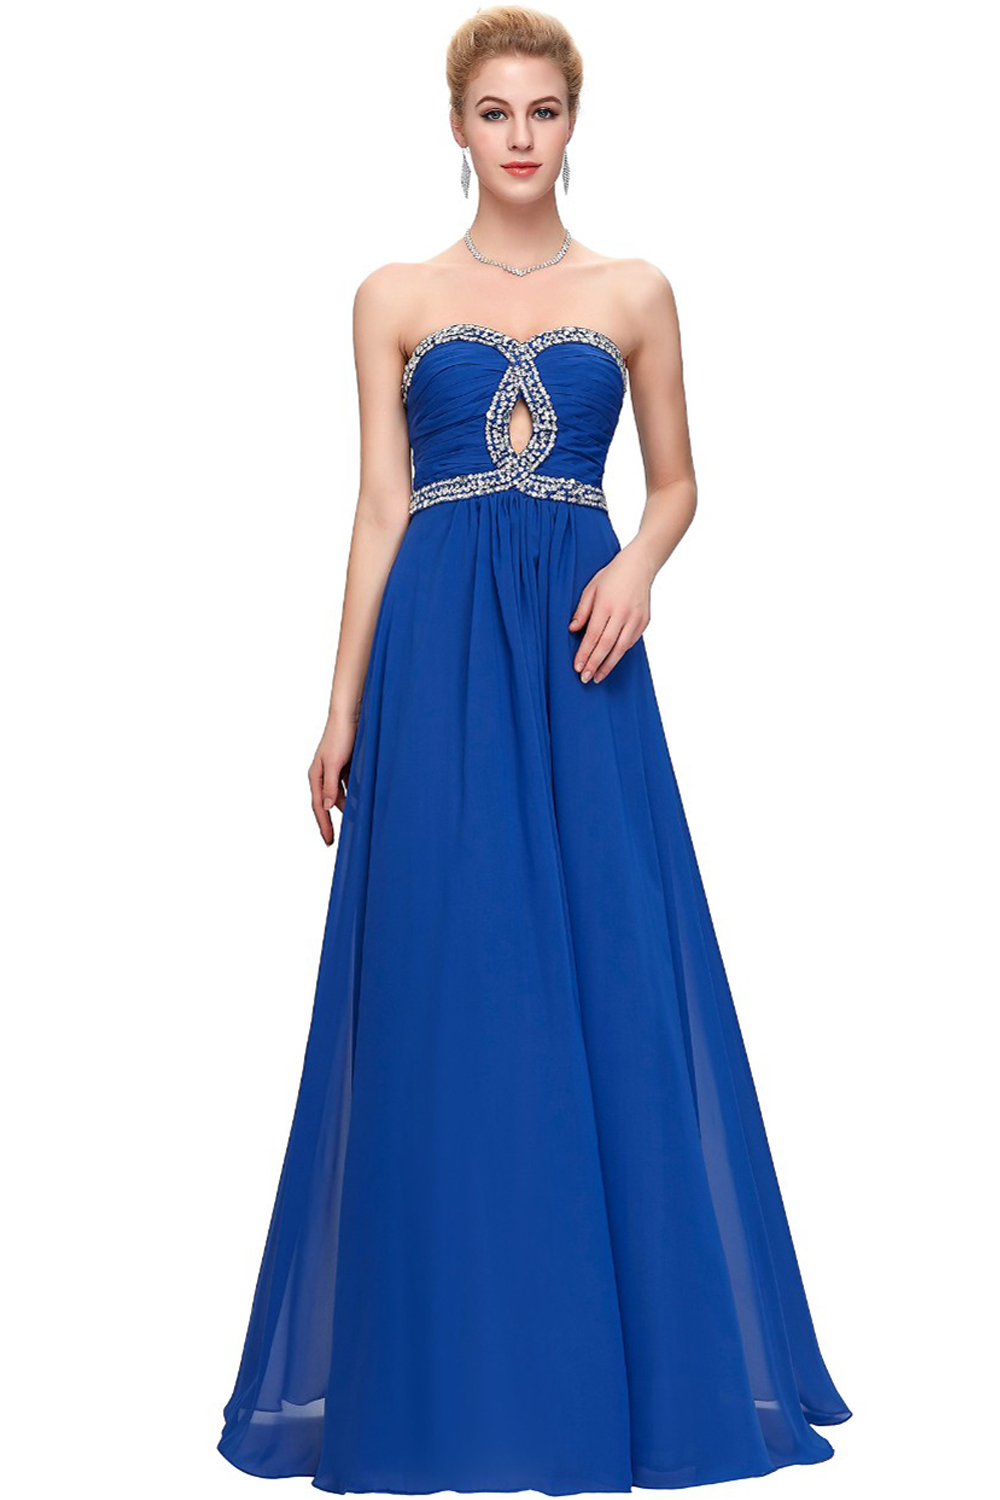 A-Line/Princess Chiffon Floor Length Bridesmaid Dresses for Weddings